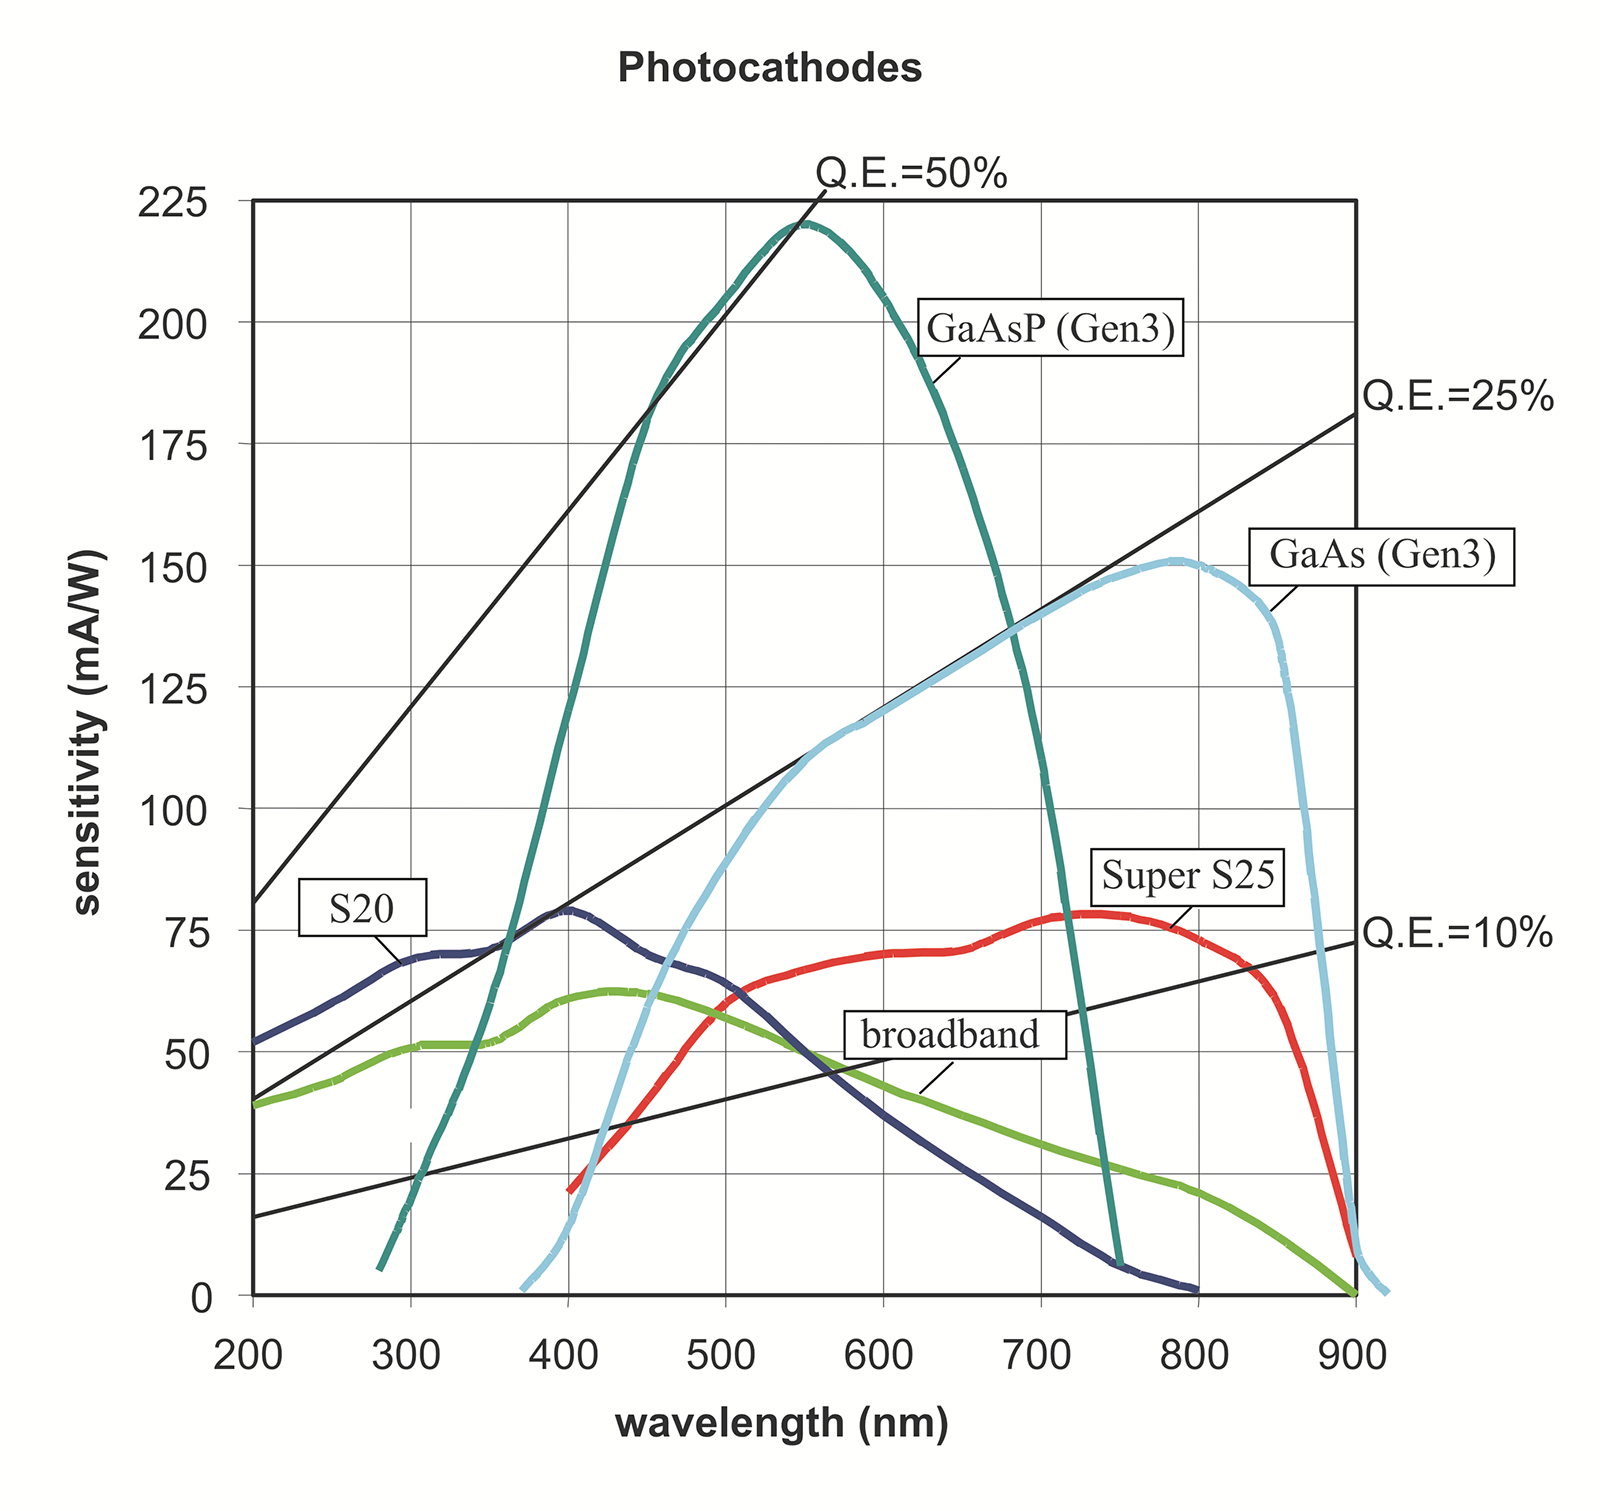 Figure 5.Sensitivity of photocathodes. GaAs and GaAsP cathodes are usually offered in Gen3 intensifiers, while S20, S25 and broadband are common in Gen2 intensifiers.